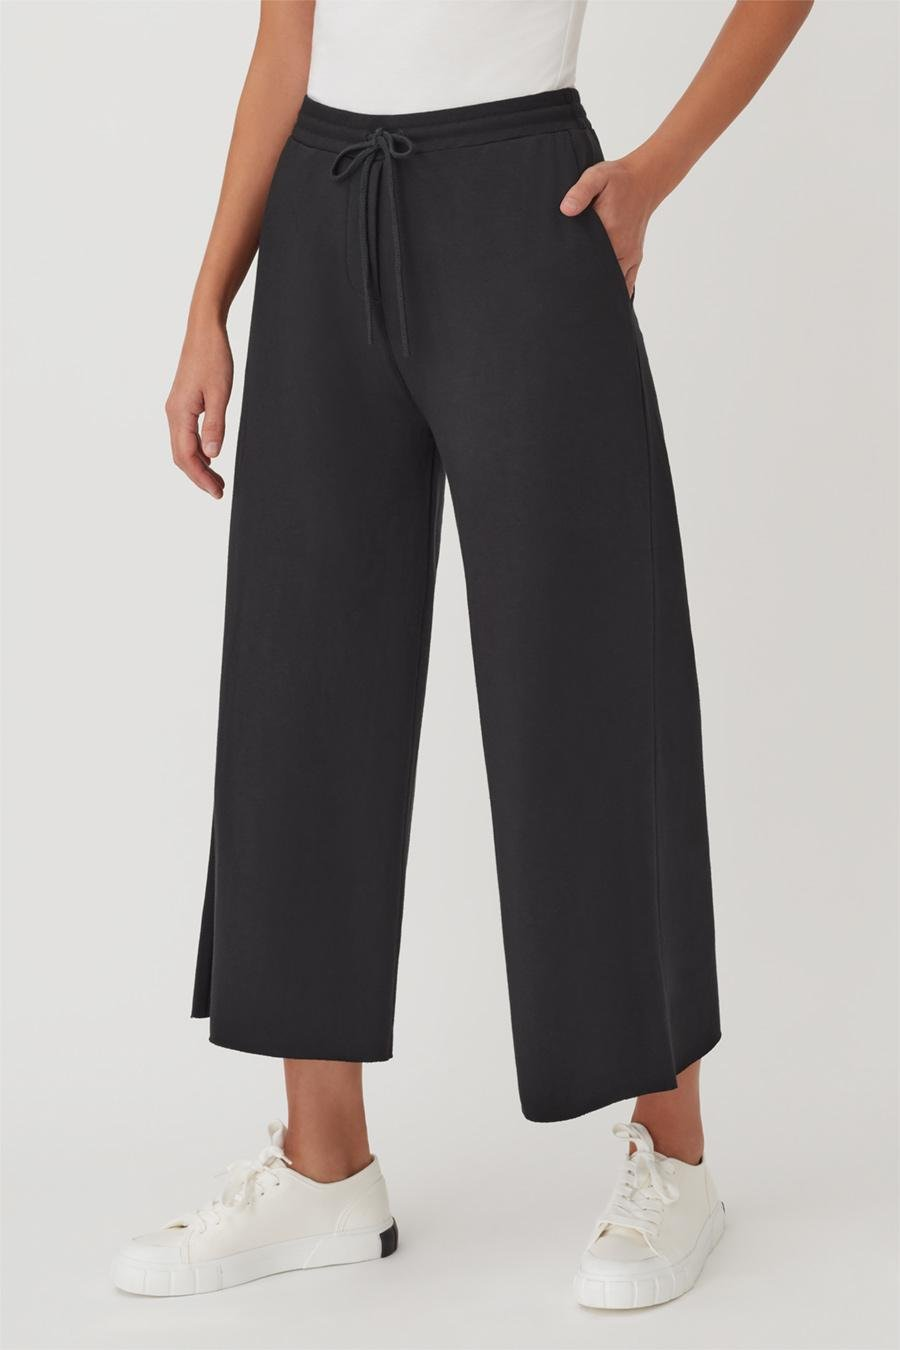 Women's French Terry Wide-Leg Cropped Pant in Black   Size: 1